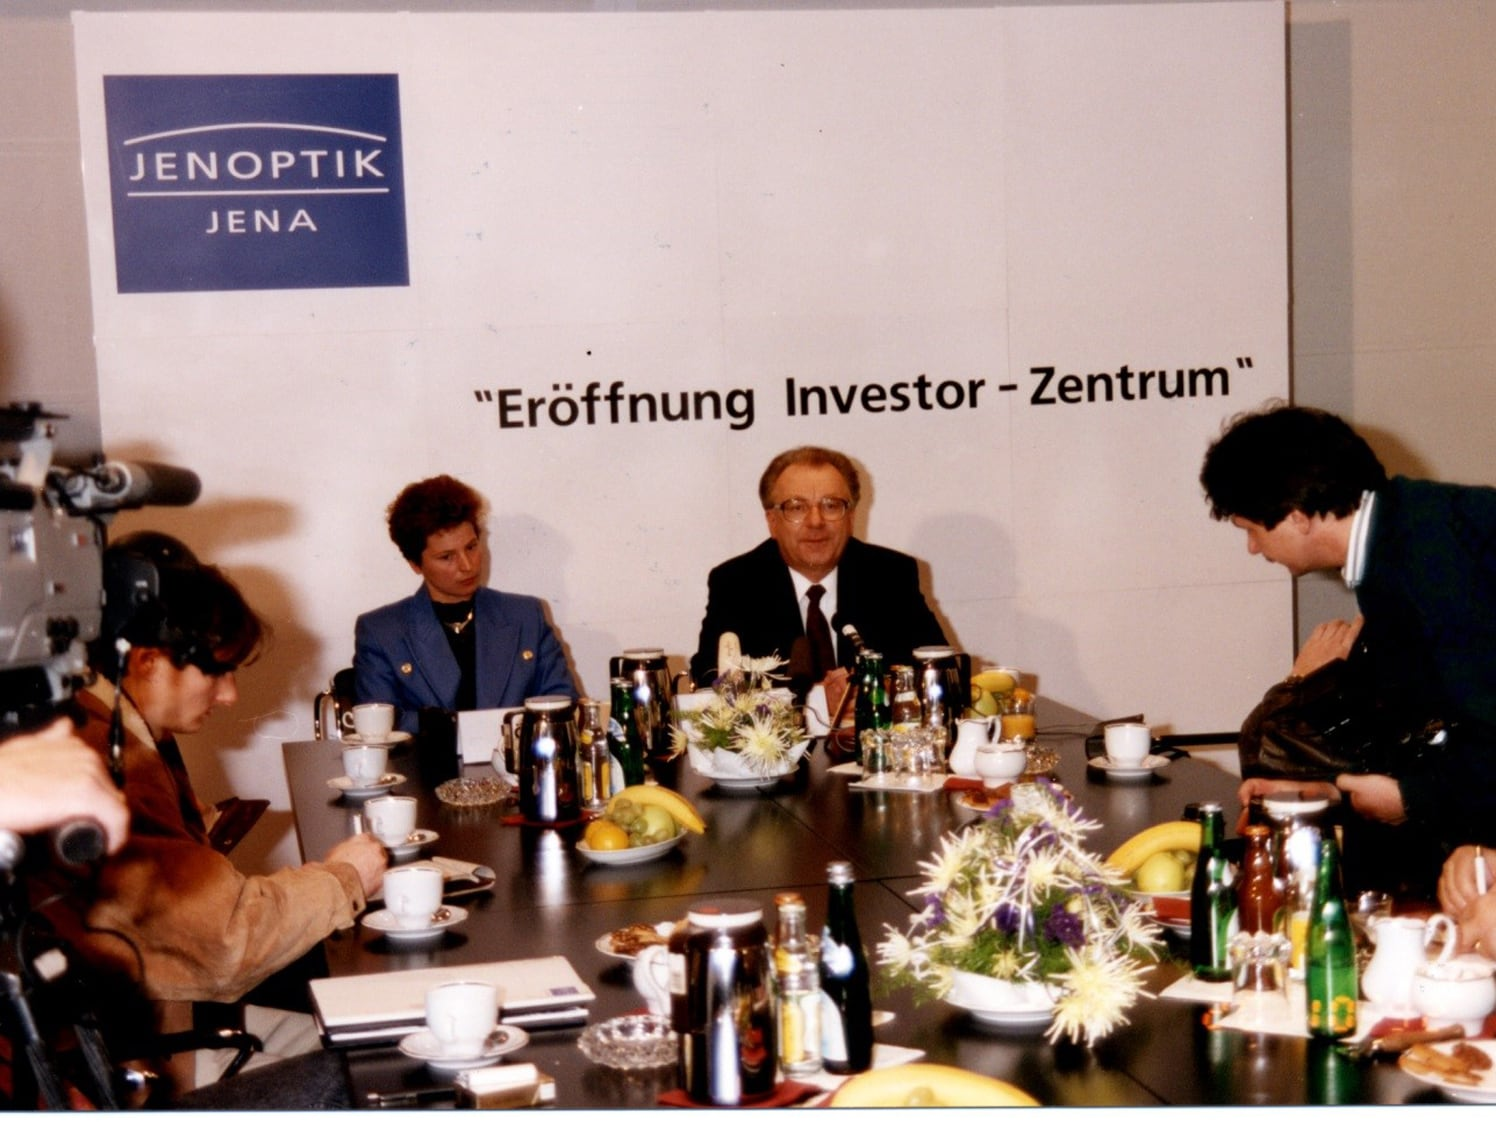 1992: Jenoptik opens an investor center